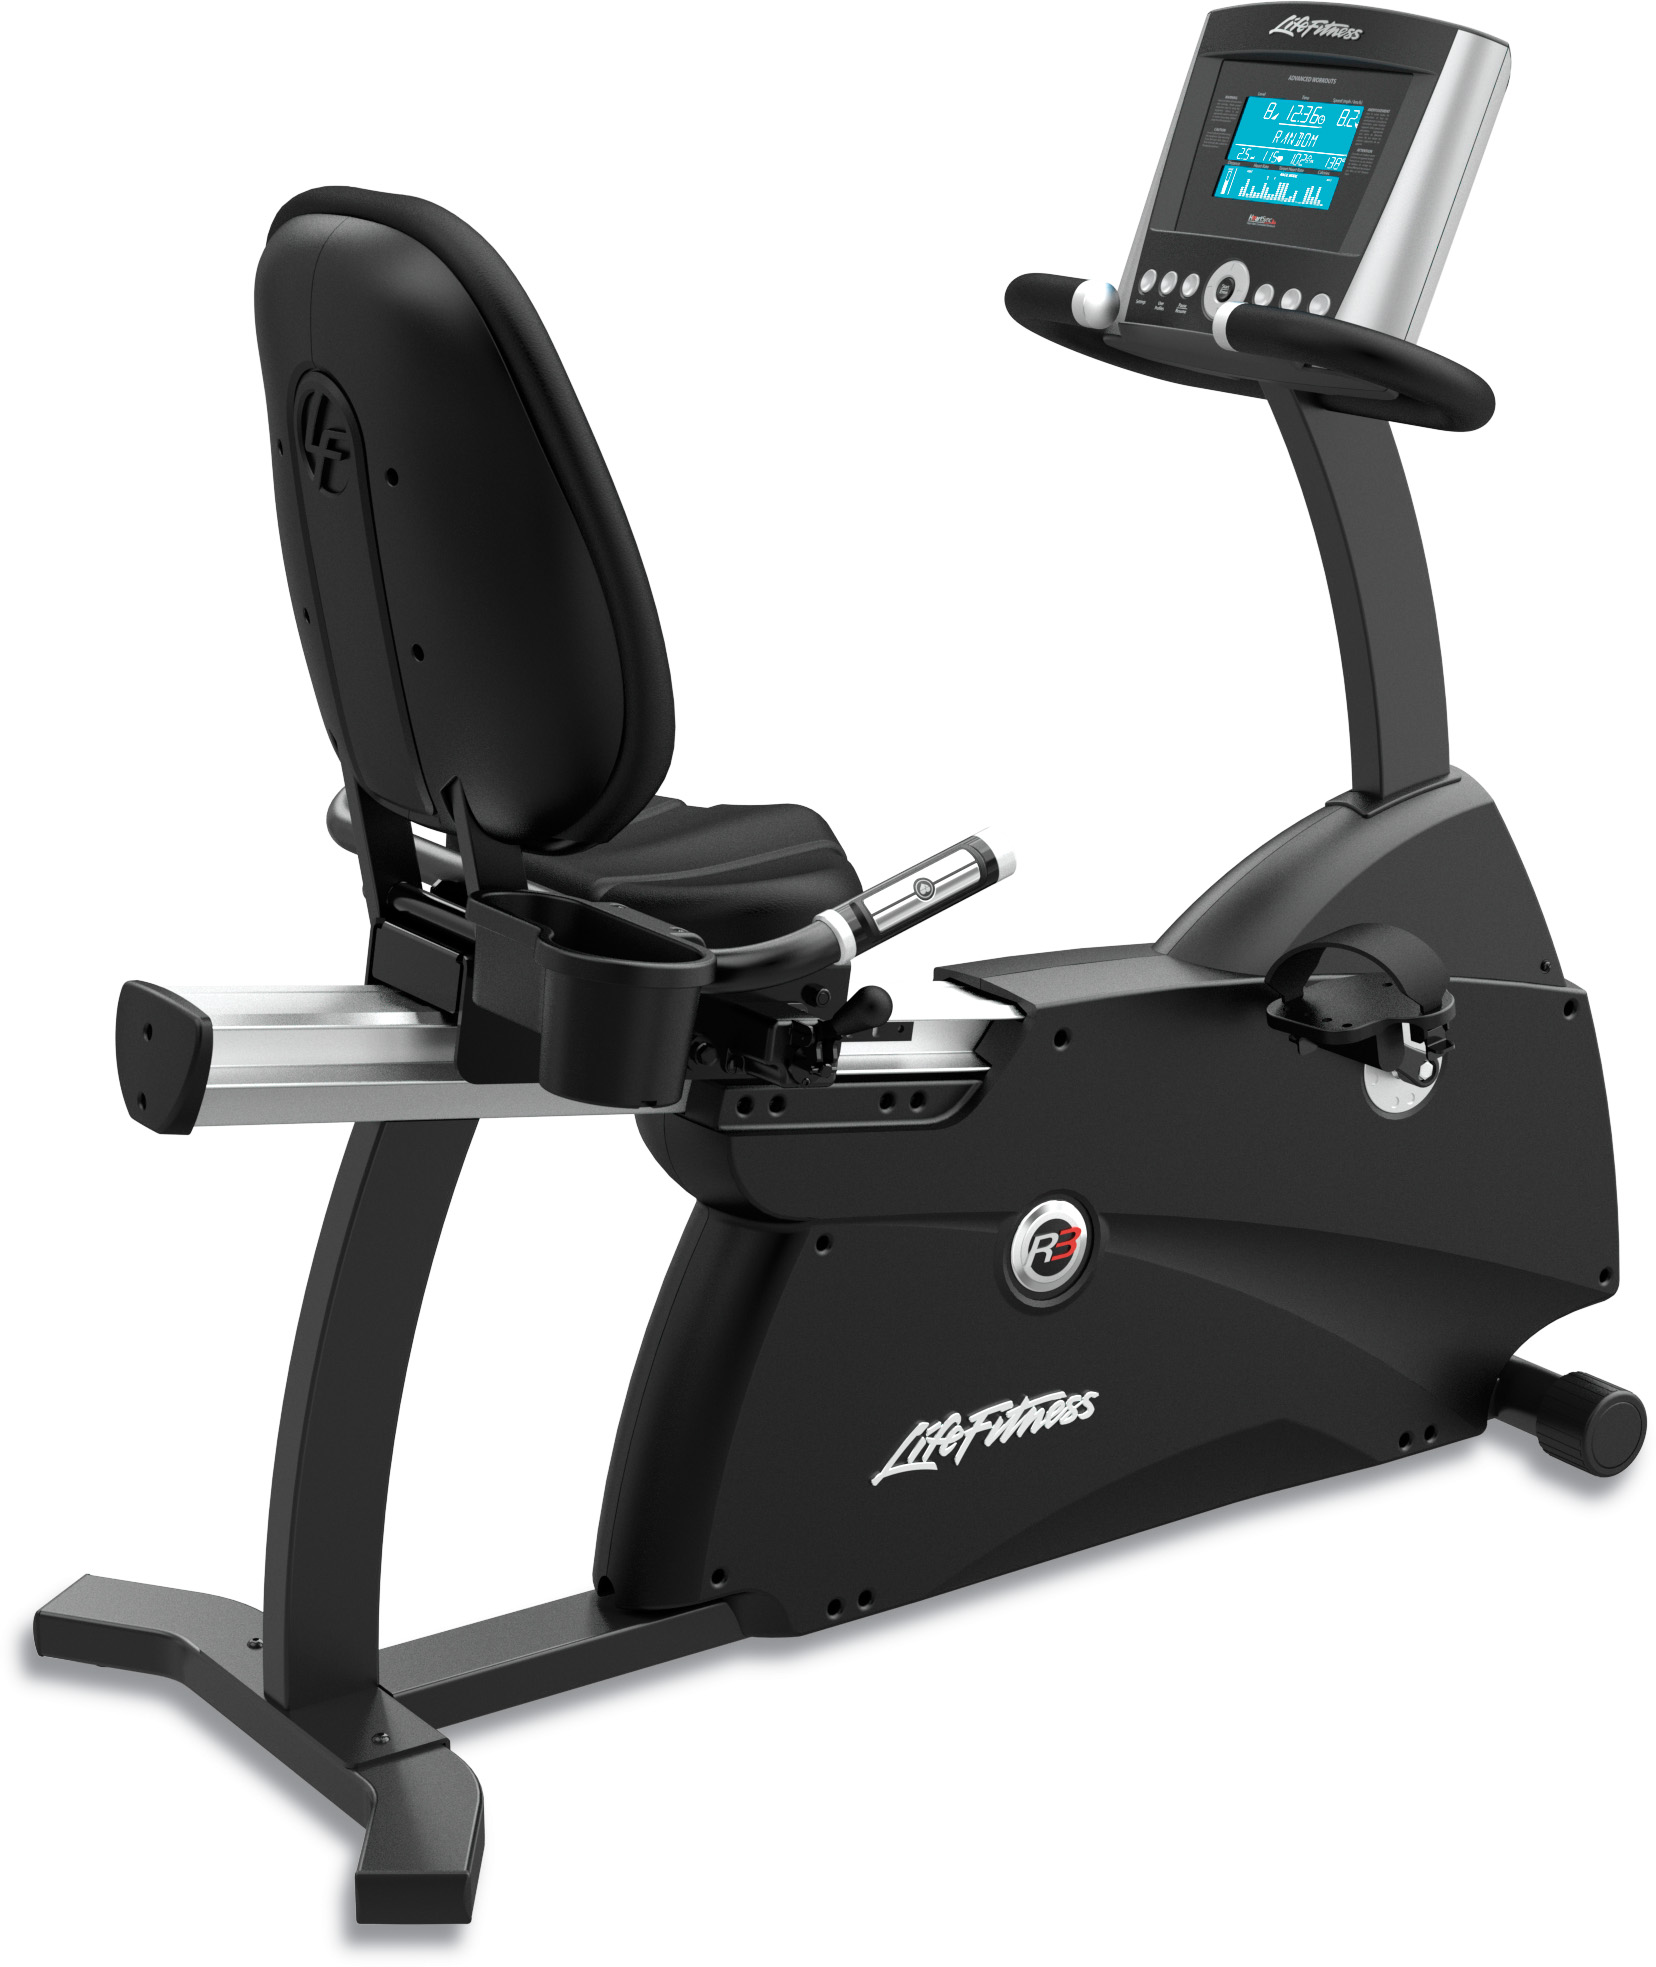 Life Fitness R3 Recumbent Stationary Bike w/ Basic Screen